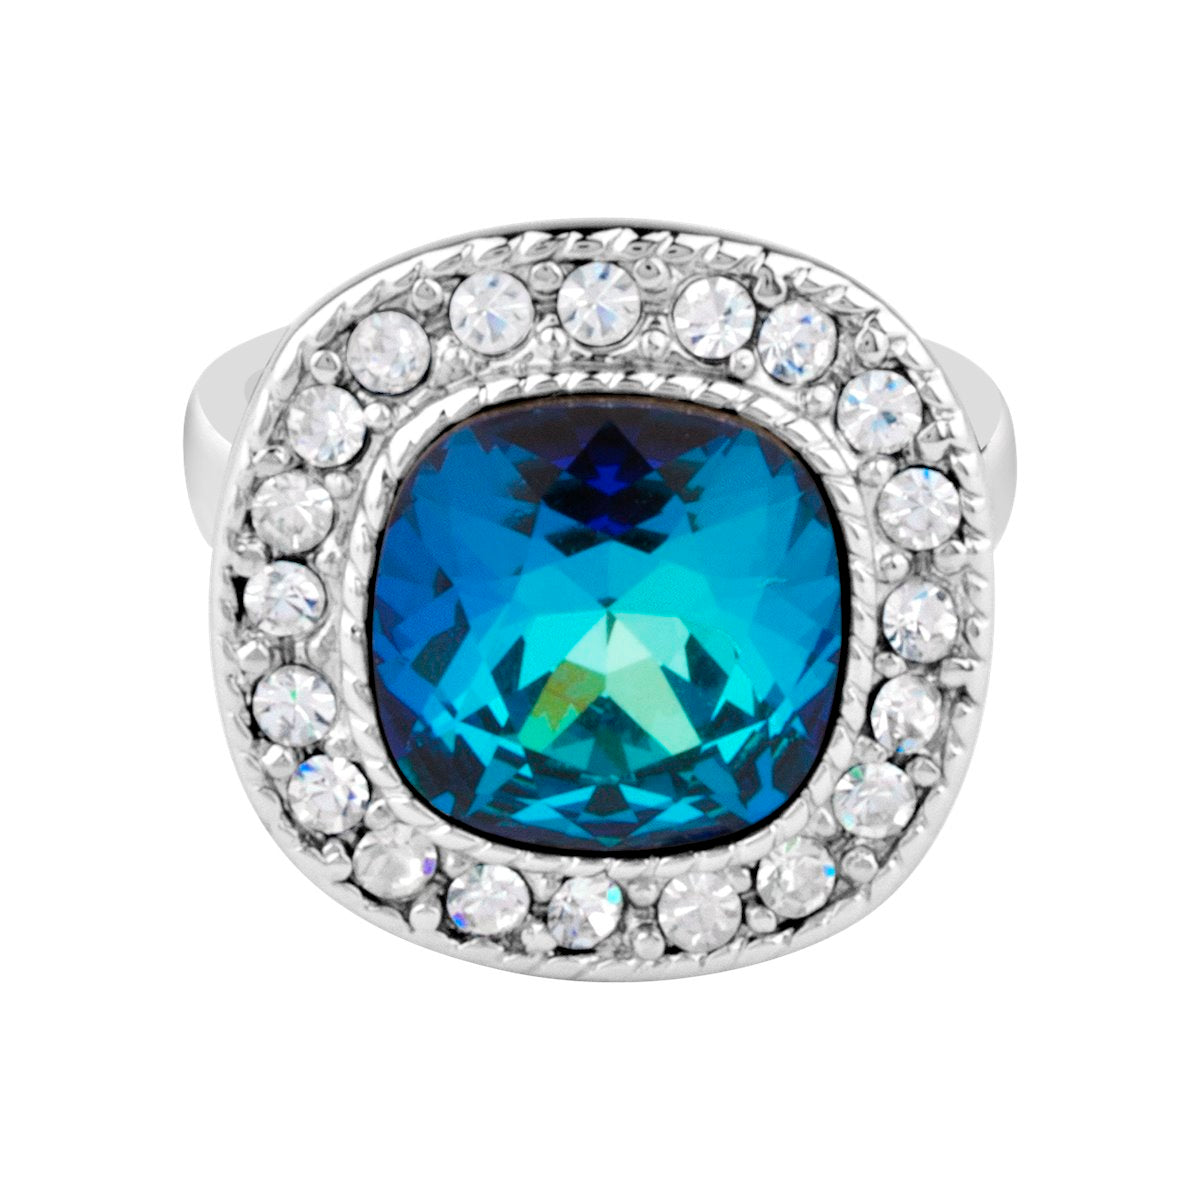 ARNOLFINI RING BERMUDA BLUE RING - FOREVER - ESSENTIALS - BERMUDA BLUE FOREVER